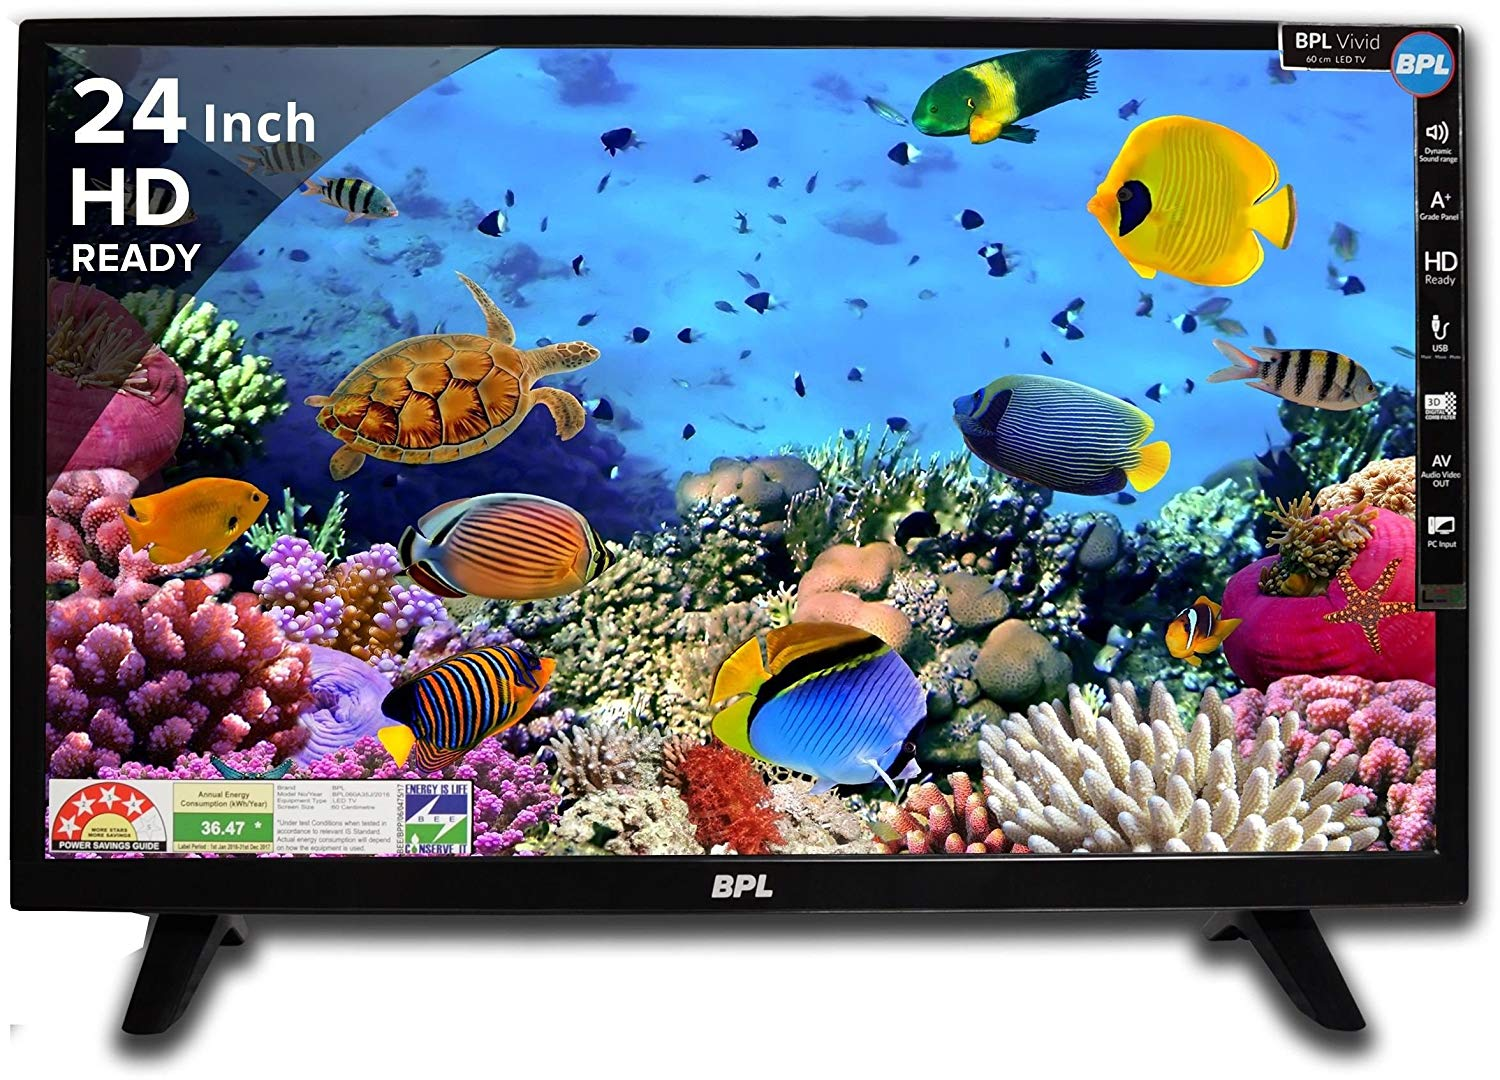 BPL BPL060A35J (24 inches) Vivid  HD Ready LED TV